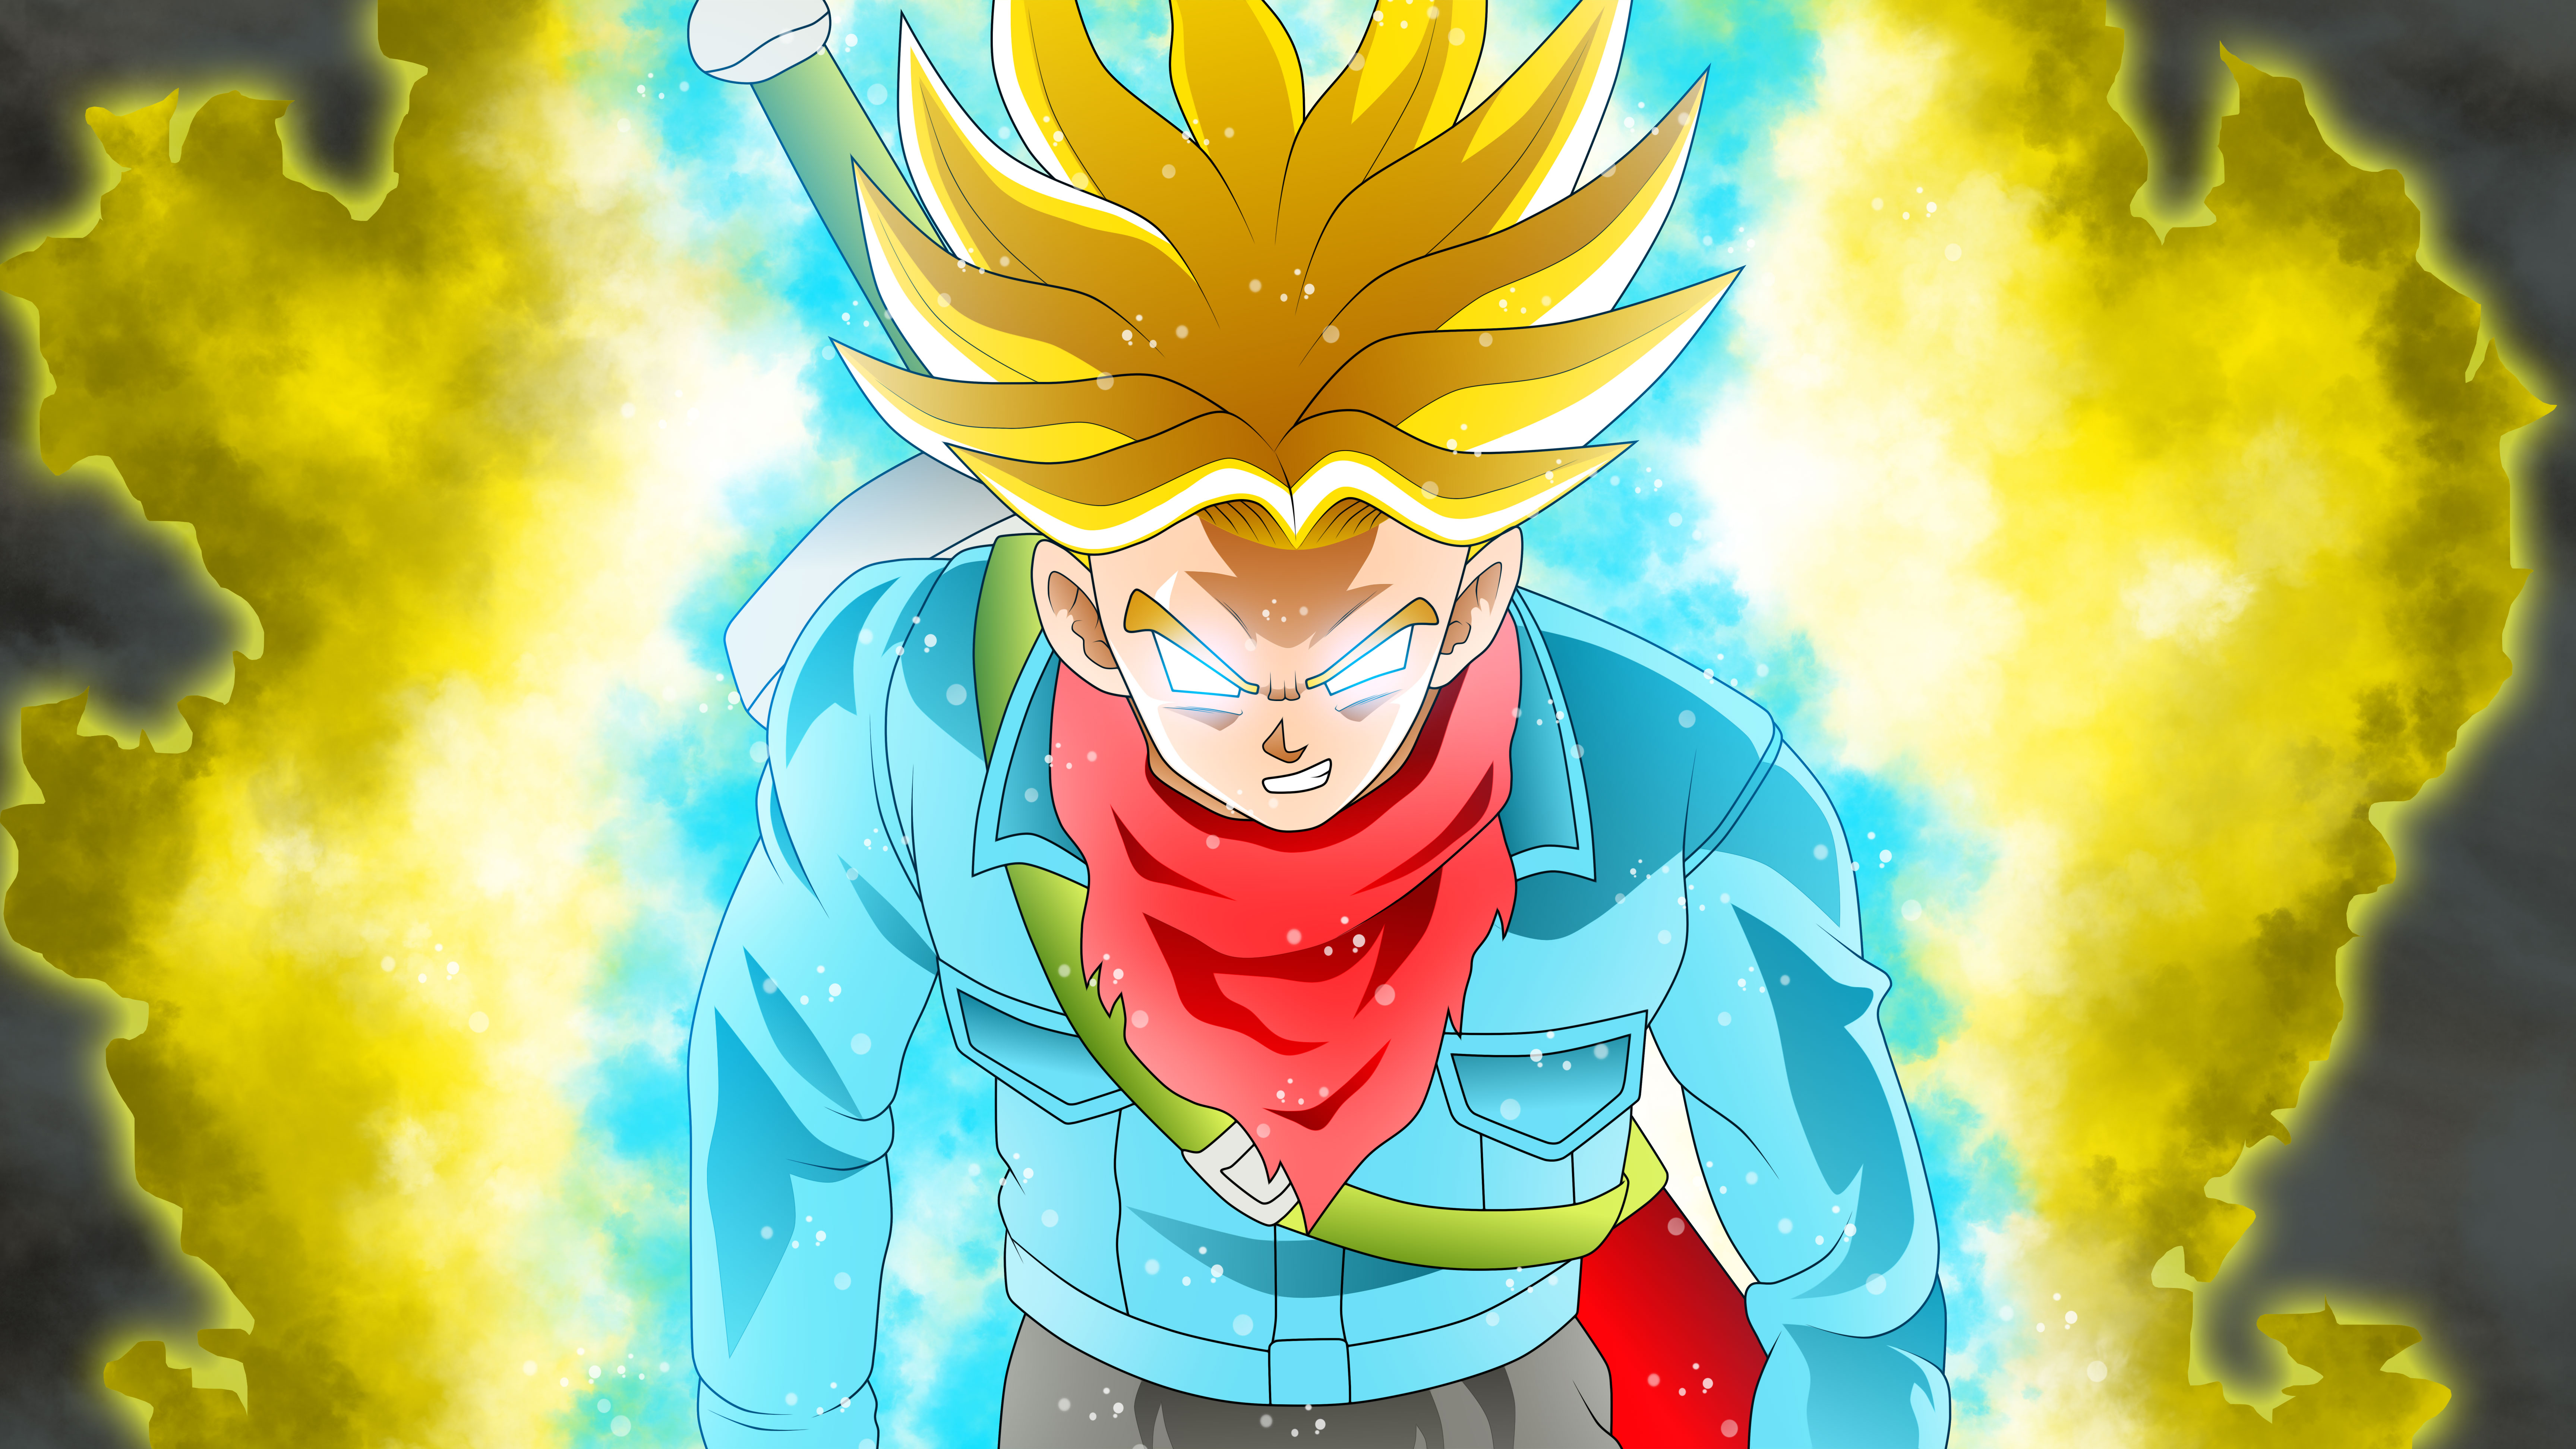 Trunks Dragon Ball Super Hd Anime 4k Wallpapers Images